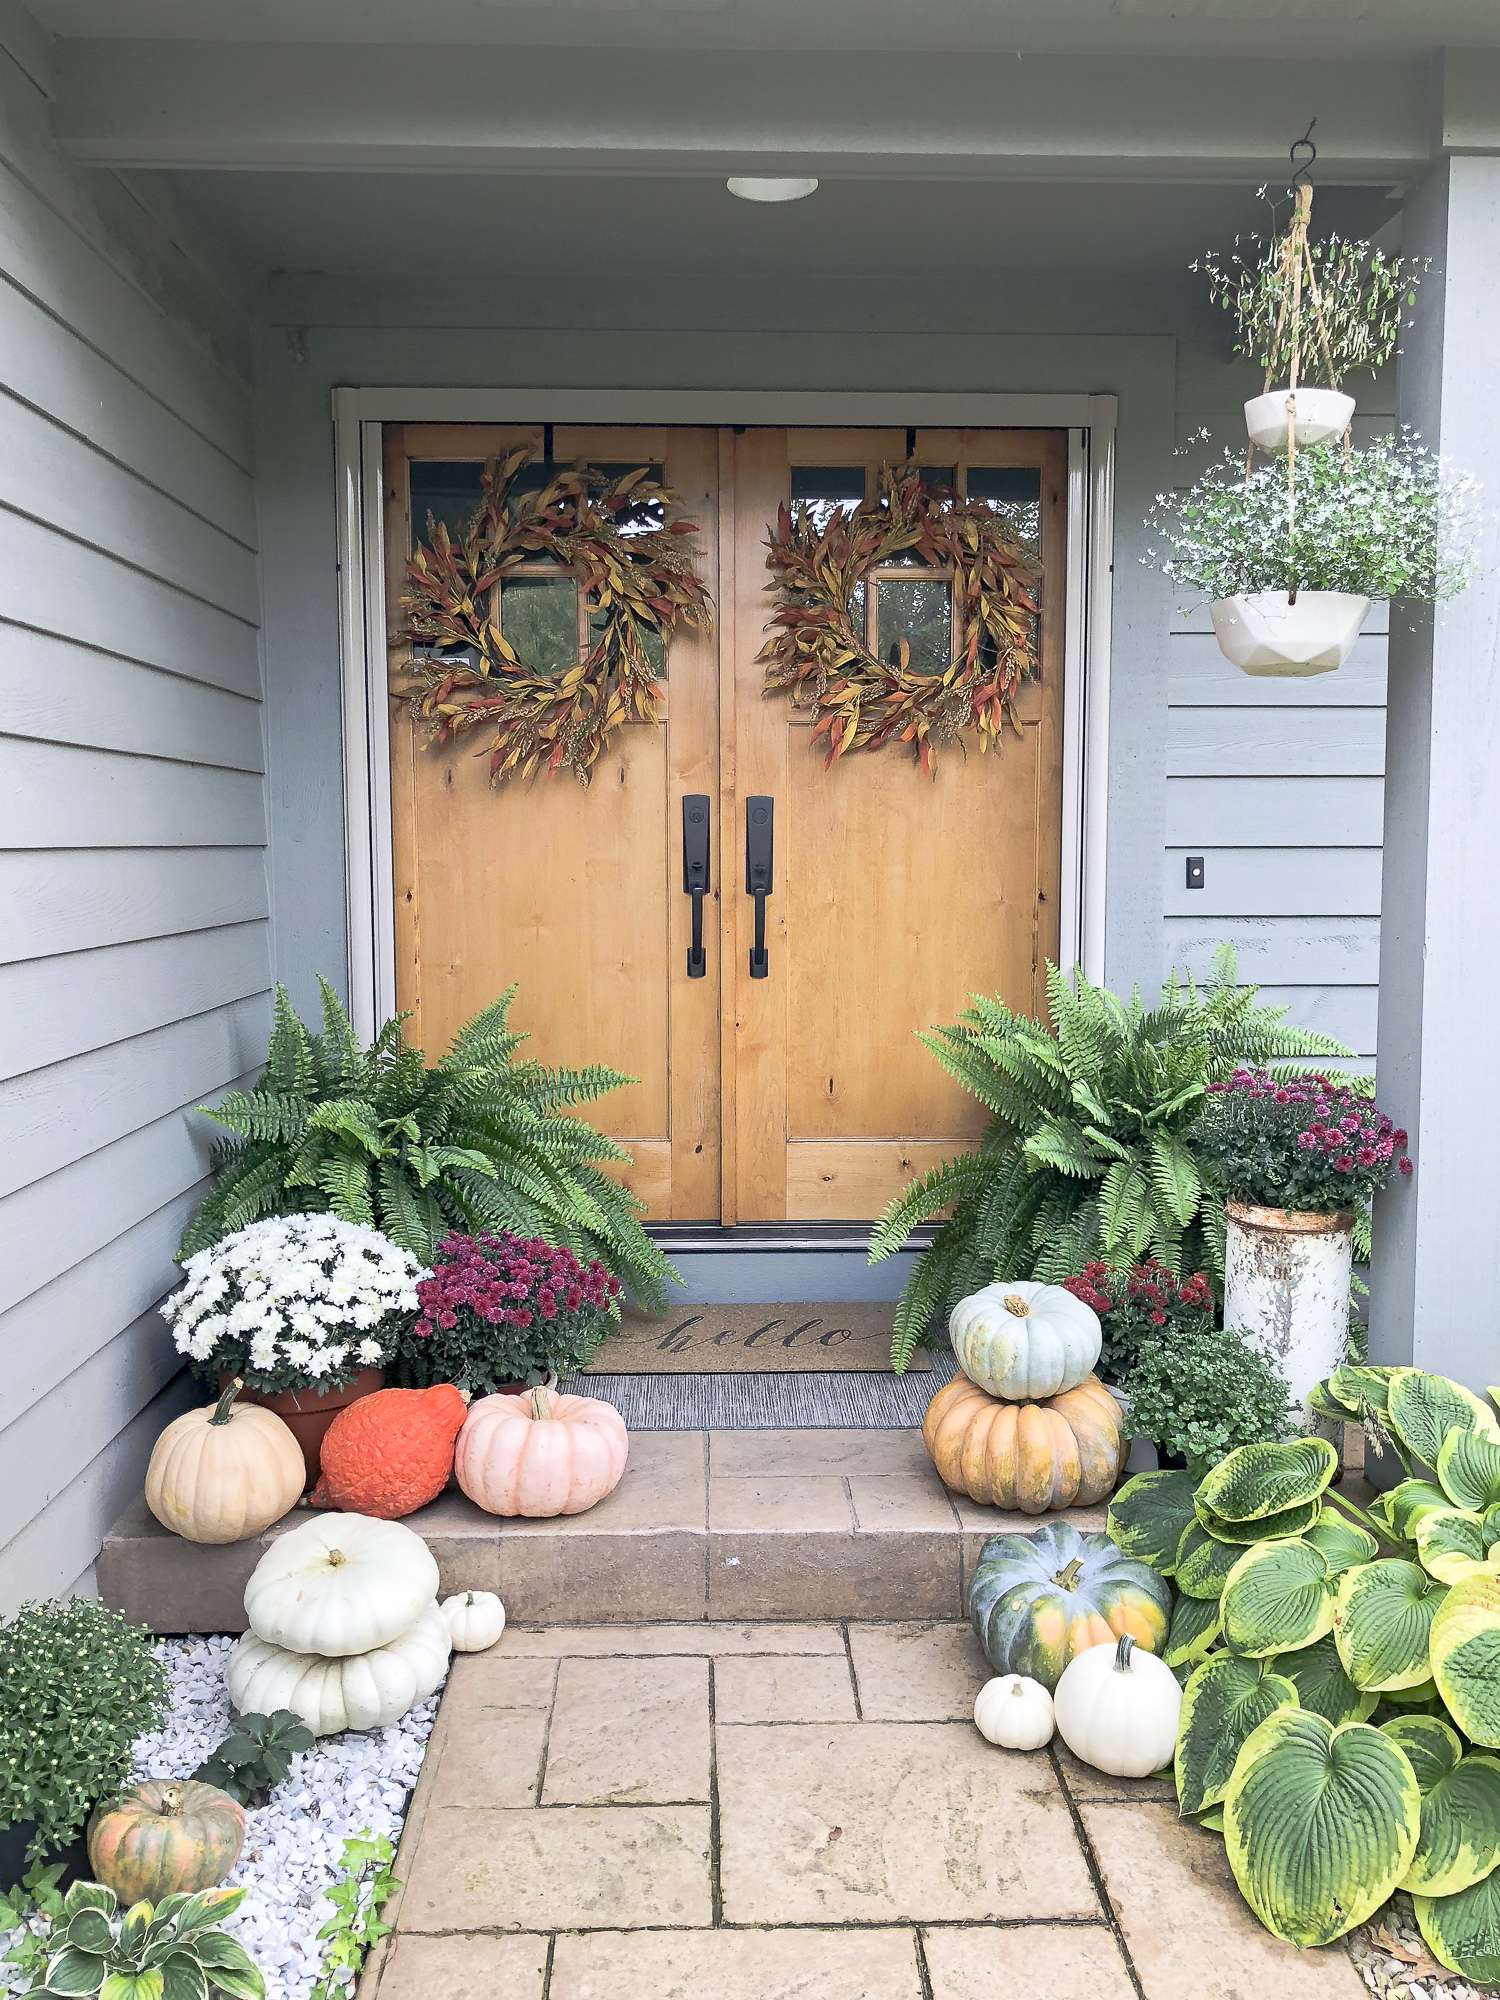 Click here to learn 3 easy steps for how to incorporate nature into your fall porch decor to create a beautiful, colorful and inviting fall front porch.